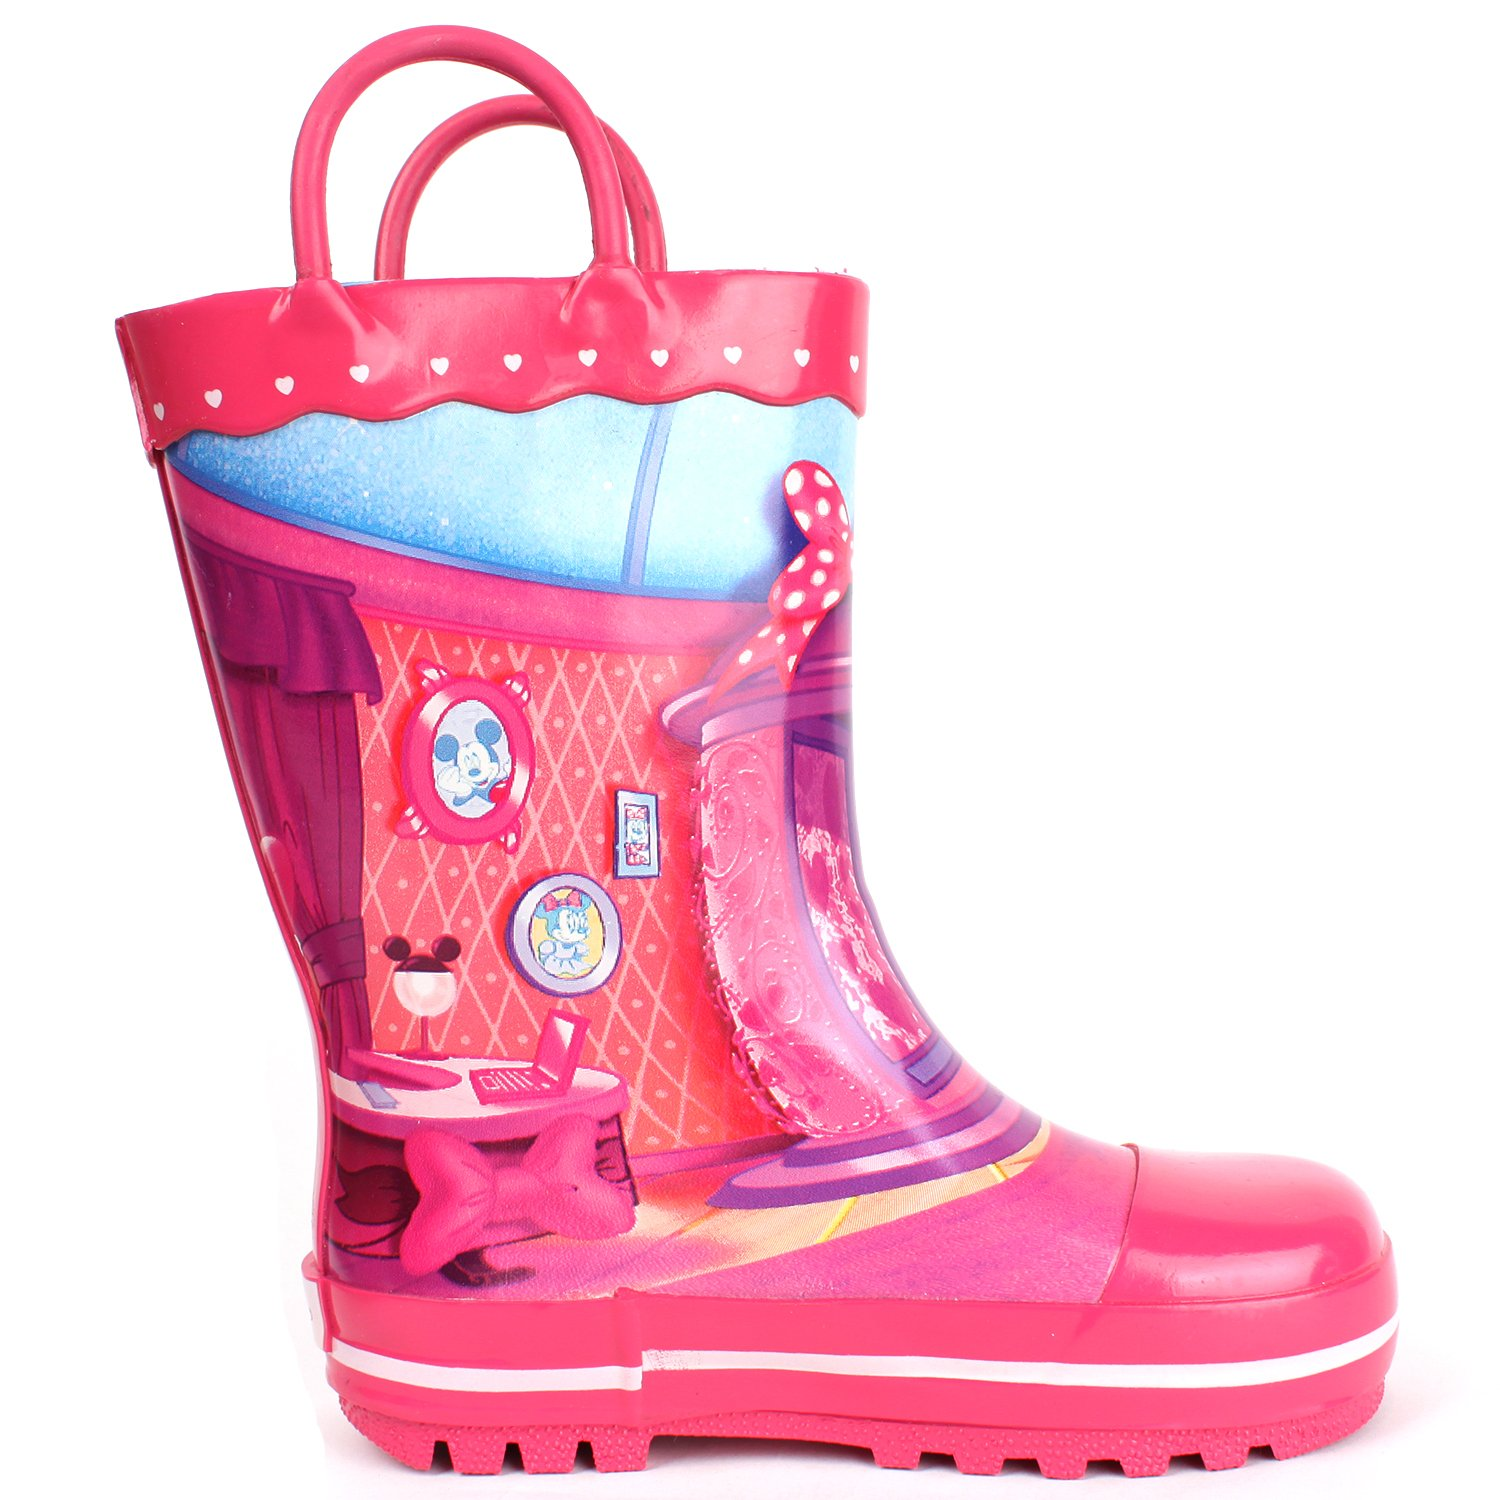 Parallel Import//Generic Product Joah Store Minnie Mouse Dot Ribbon Pink Rain Boot